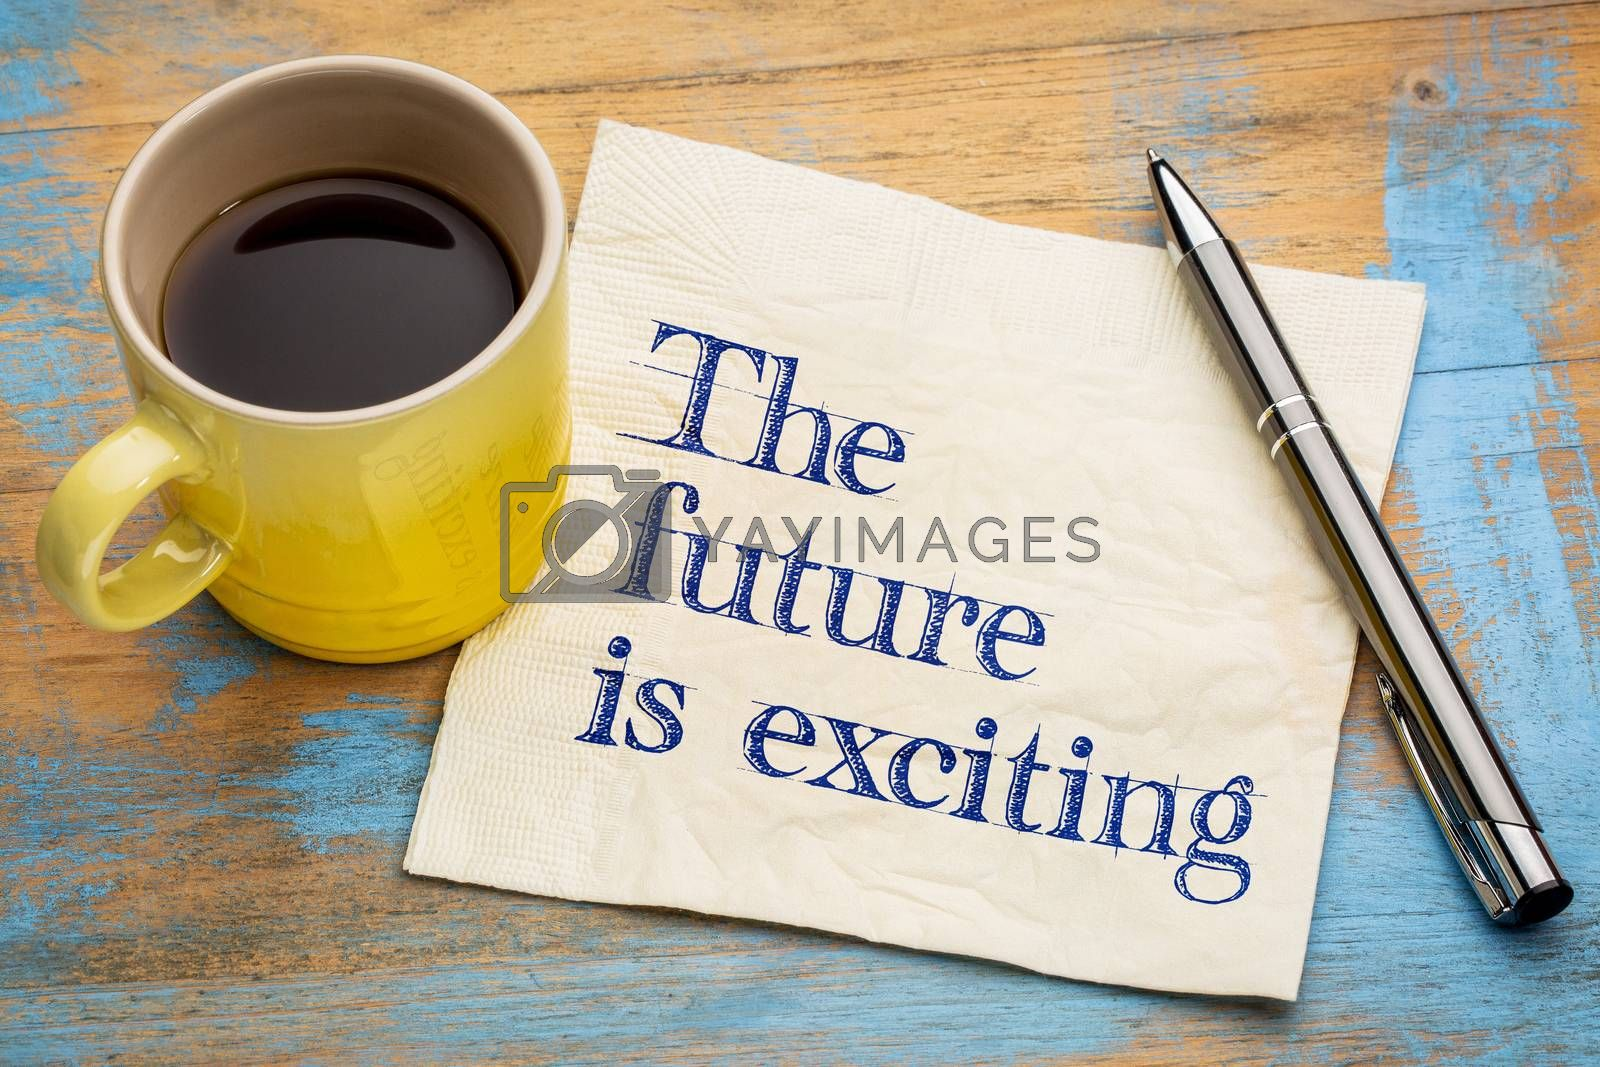 The future is exciting - handwriting on a napkin with a cup of coffee